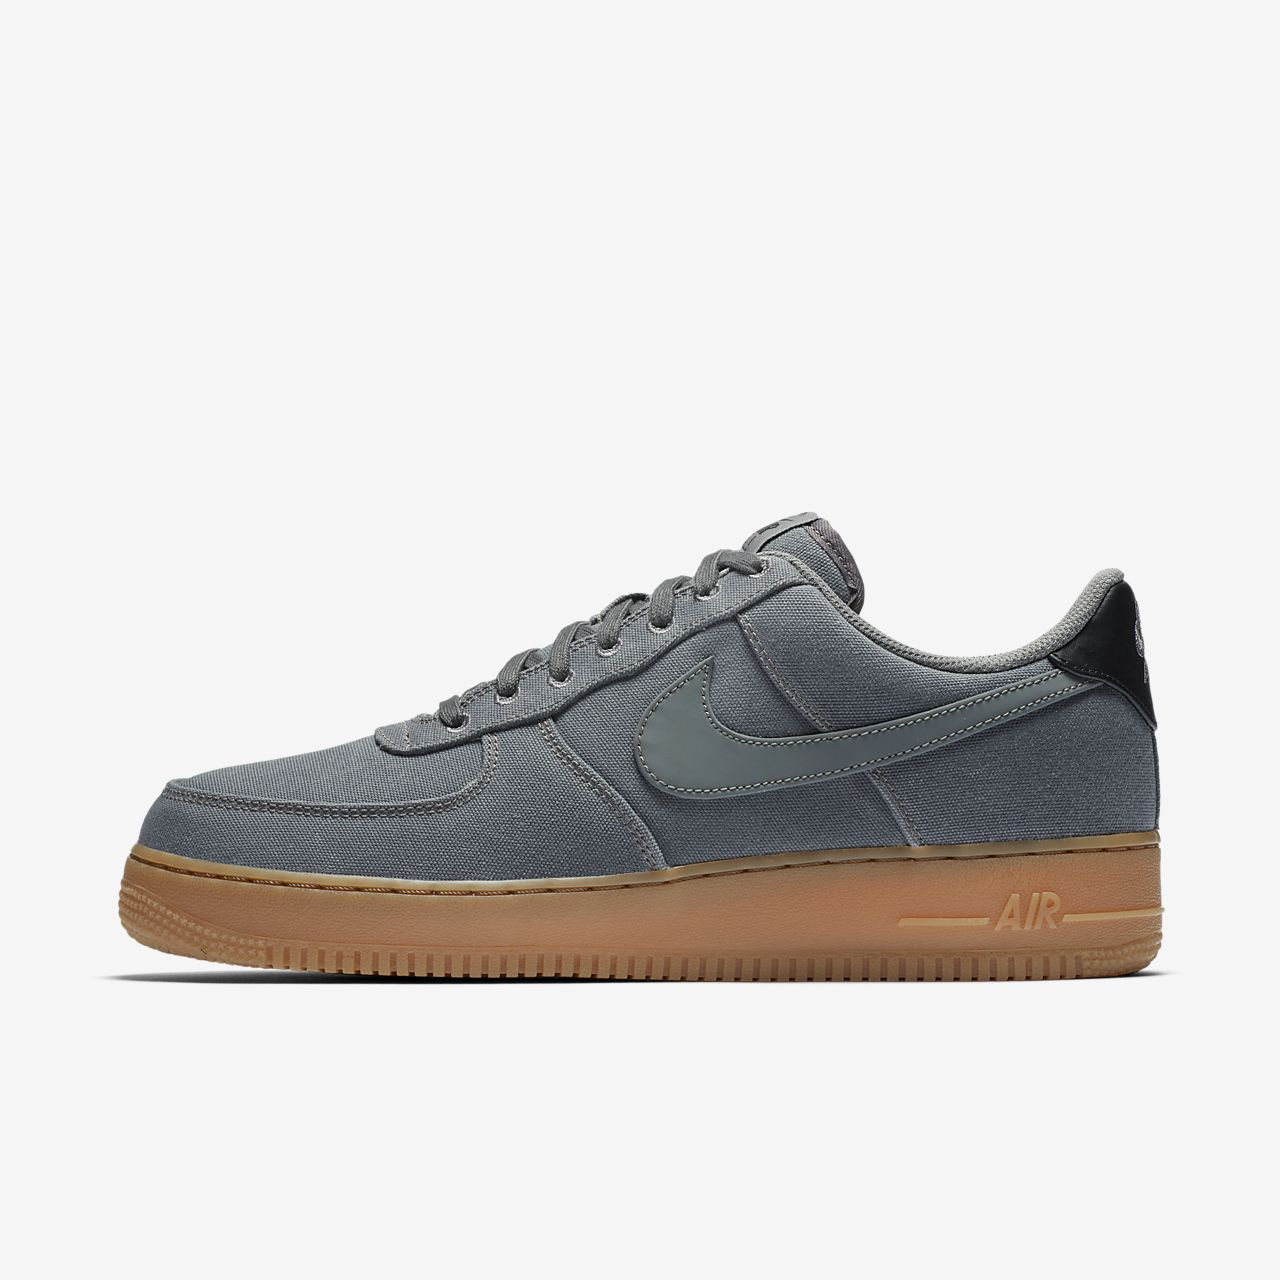 Nike Air Force 1 '07 LV8 Style Herenschoen